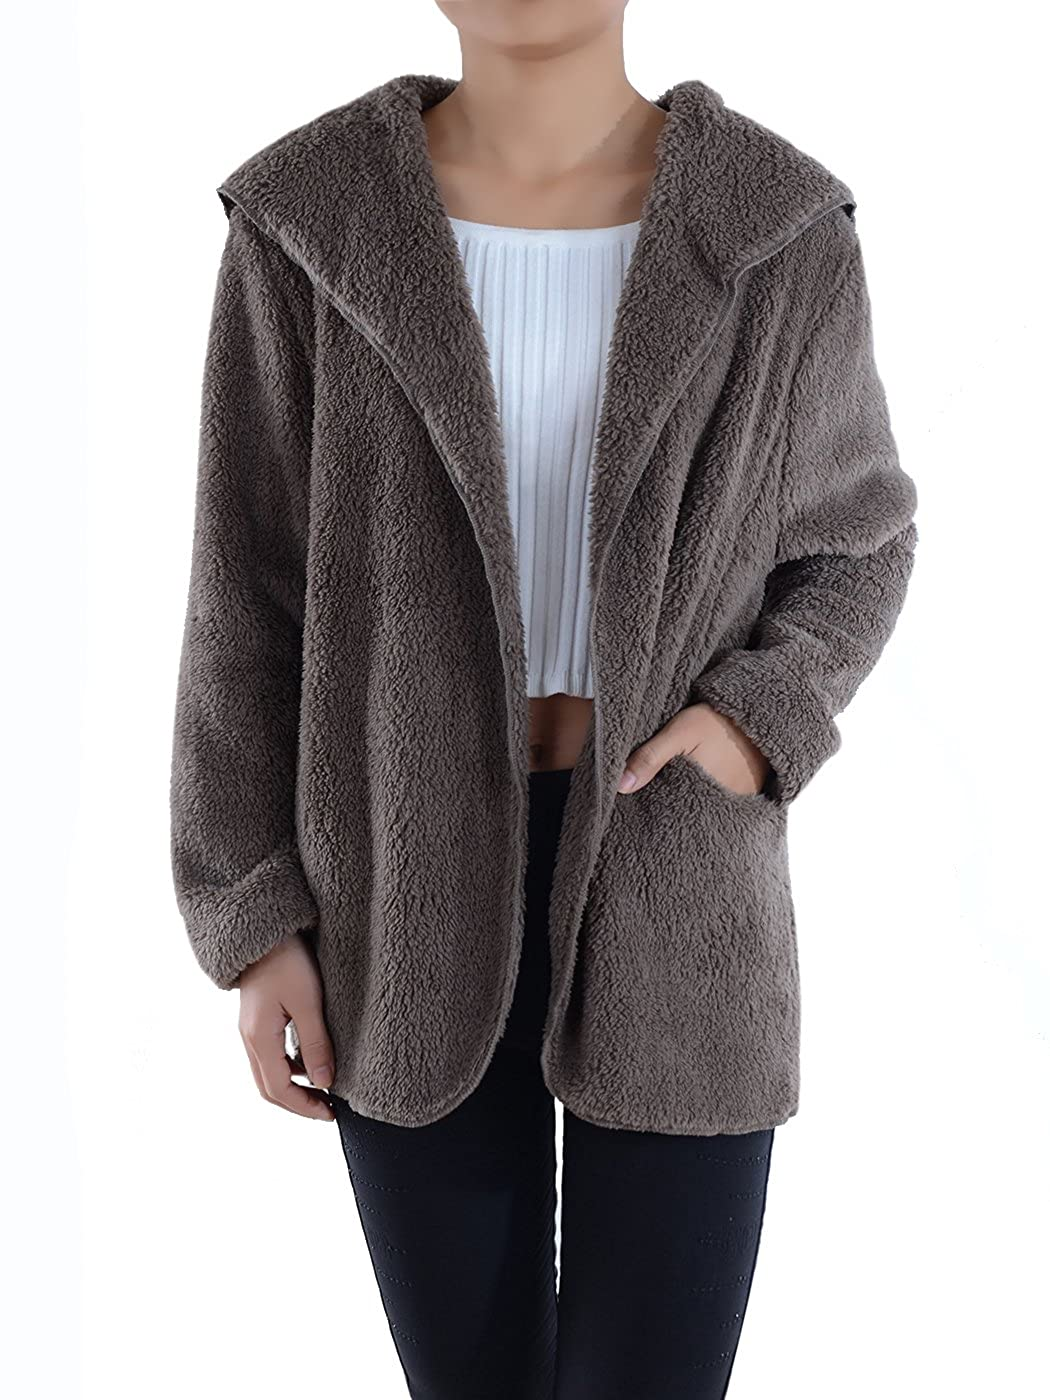 Anna-Kaci Lounge & Chill Hooded Fluffy Fleece Comfy Soft Teddy Coat Jacket Y91881P